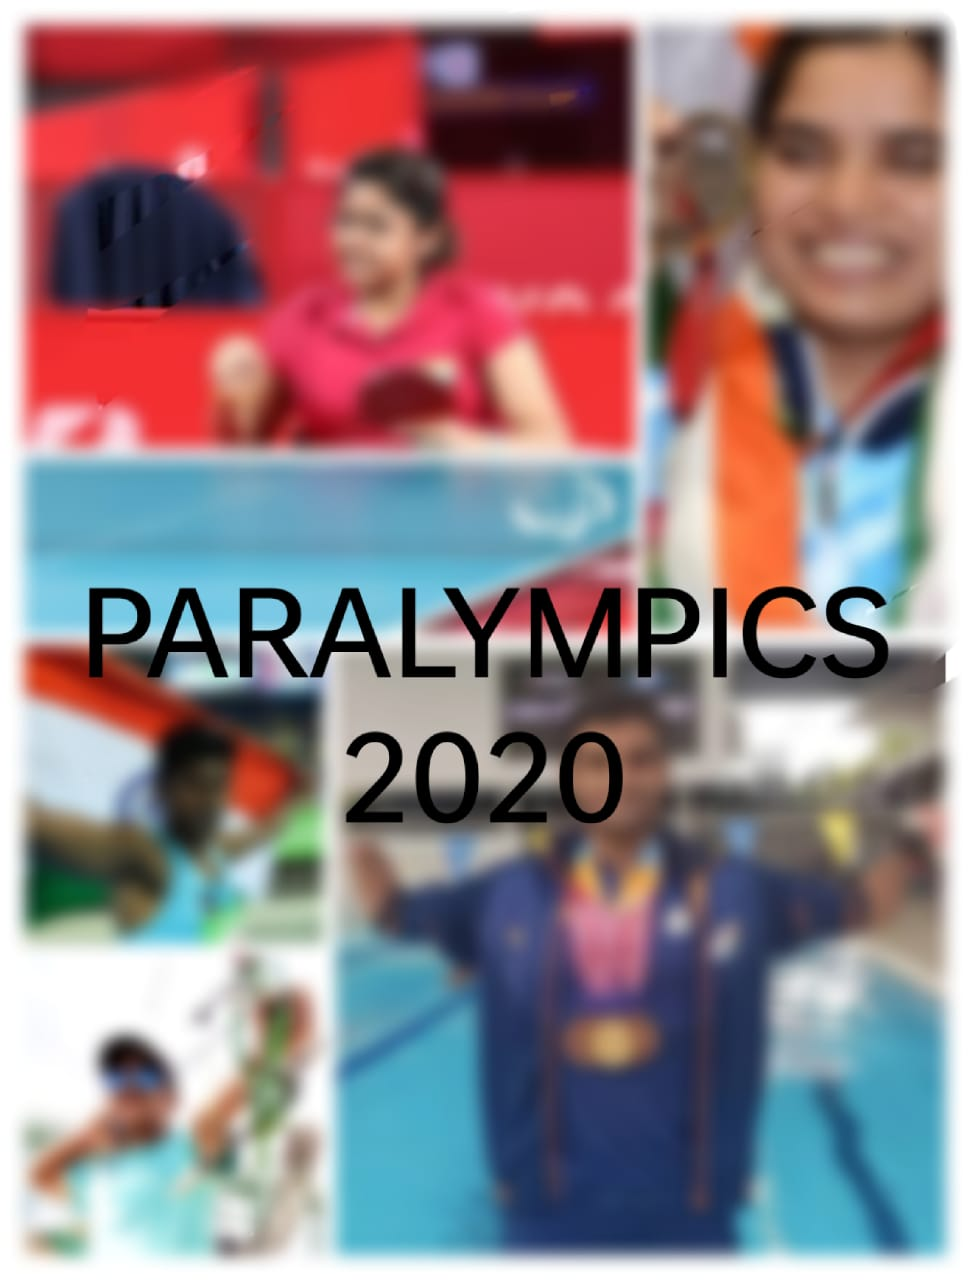 FirstStoryPositive: Meet 5 para-athletes who broke stereotypical constraints & reached Paralympics 2020